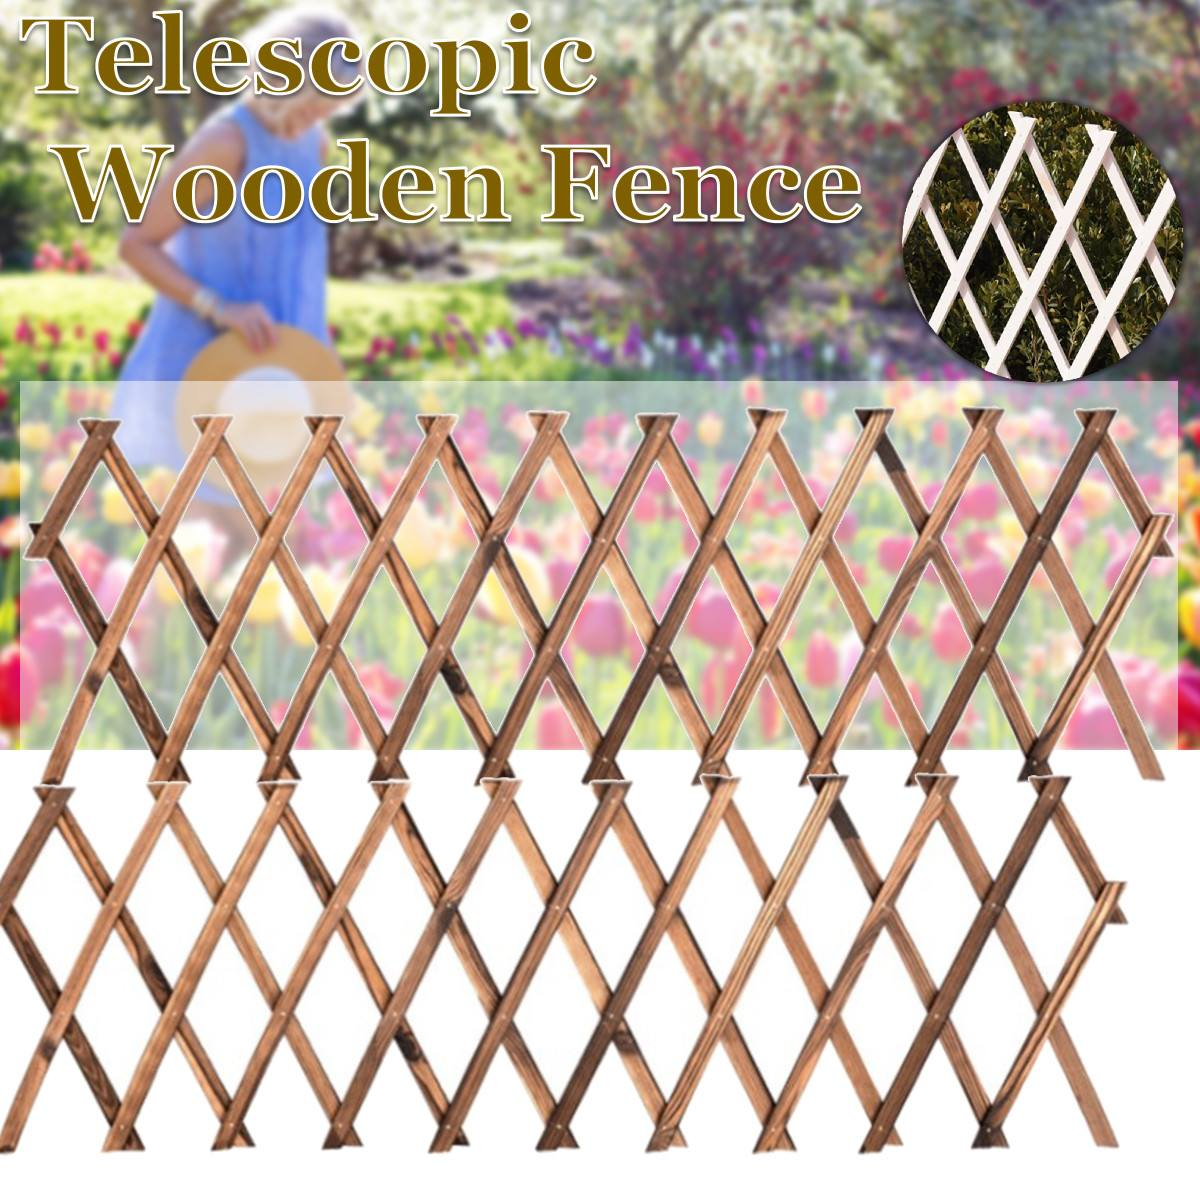 Expanding Wooden Garden Anticorrosive Wood Pull Net Wall Fence Panel Plant Climb Trellis Support for Home Yard Garden Decoration